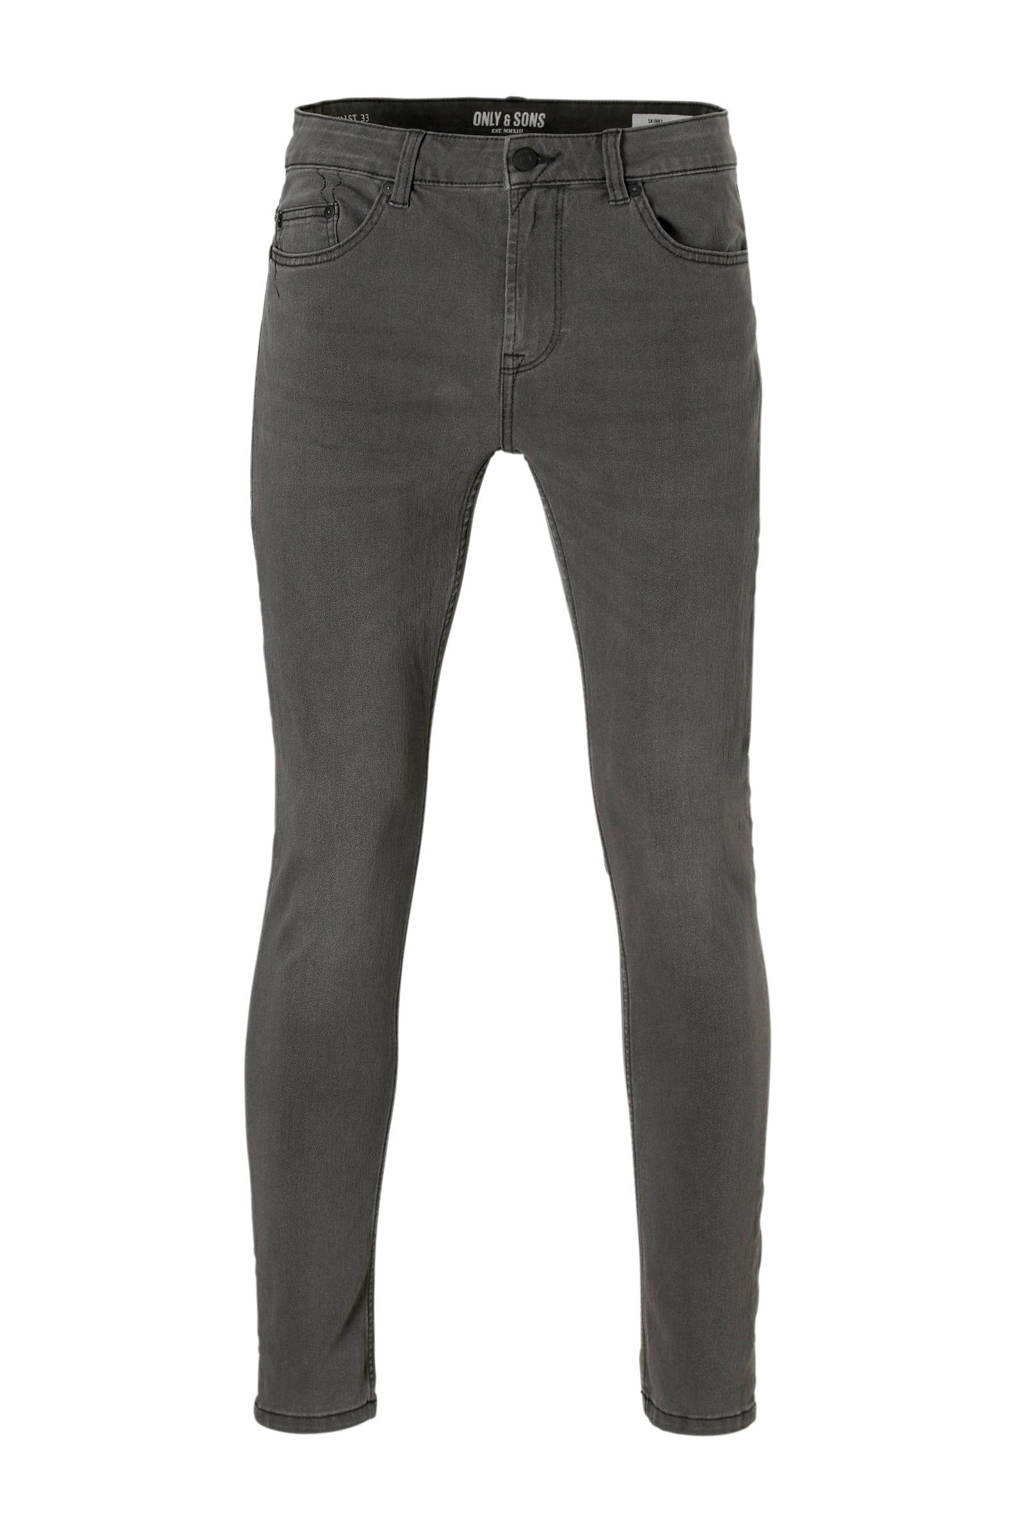 Only & Sons skinny fit jeans, Grijs